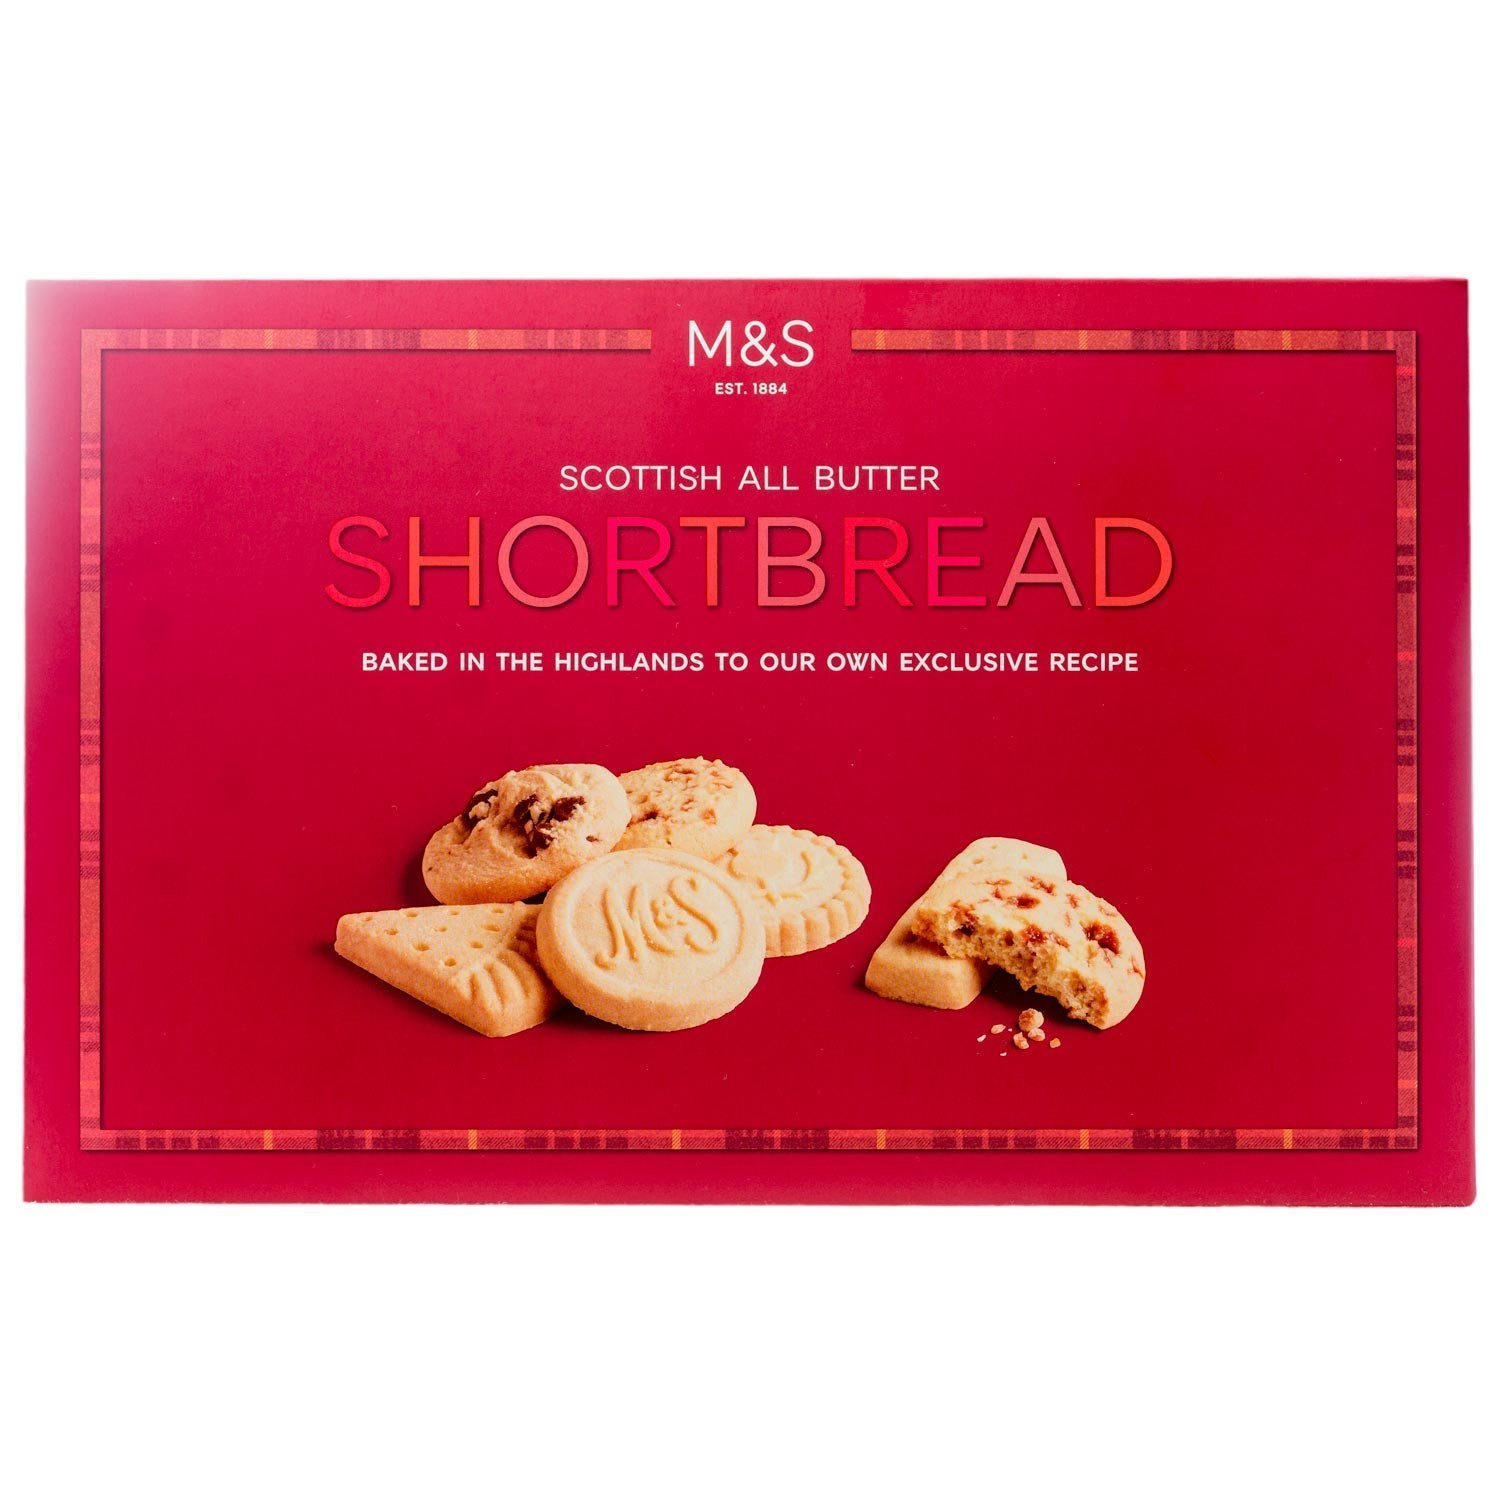 Marks and Spencer Scottish All Butter Shortbread